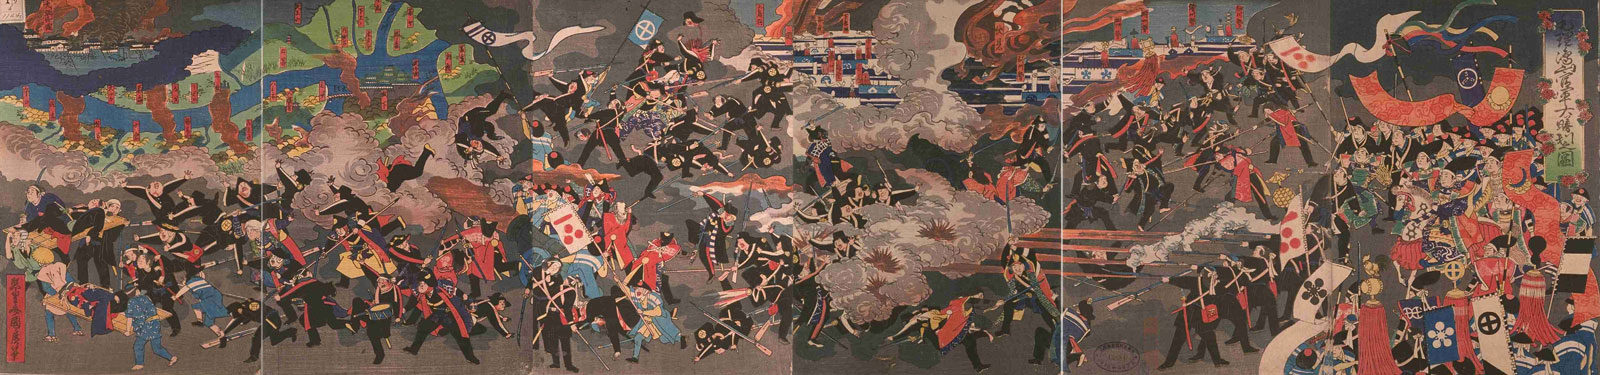 The Great Victory of the Government Forces, Shōkōsai Kunihiro